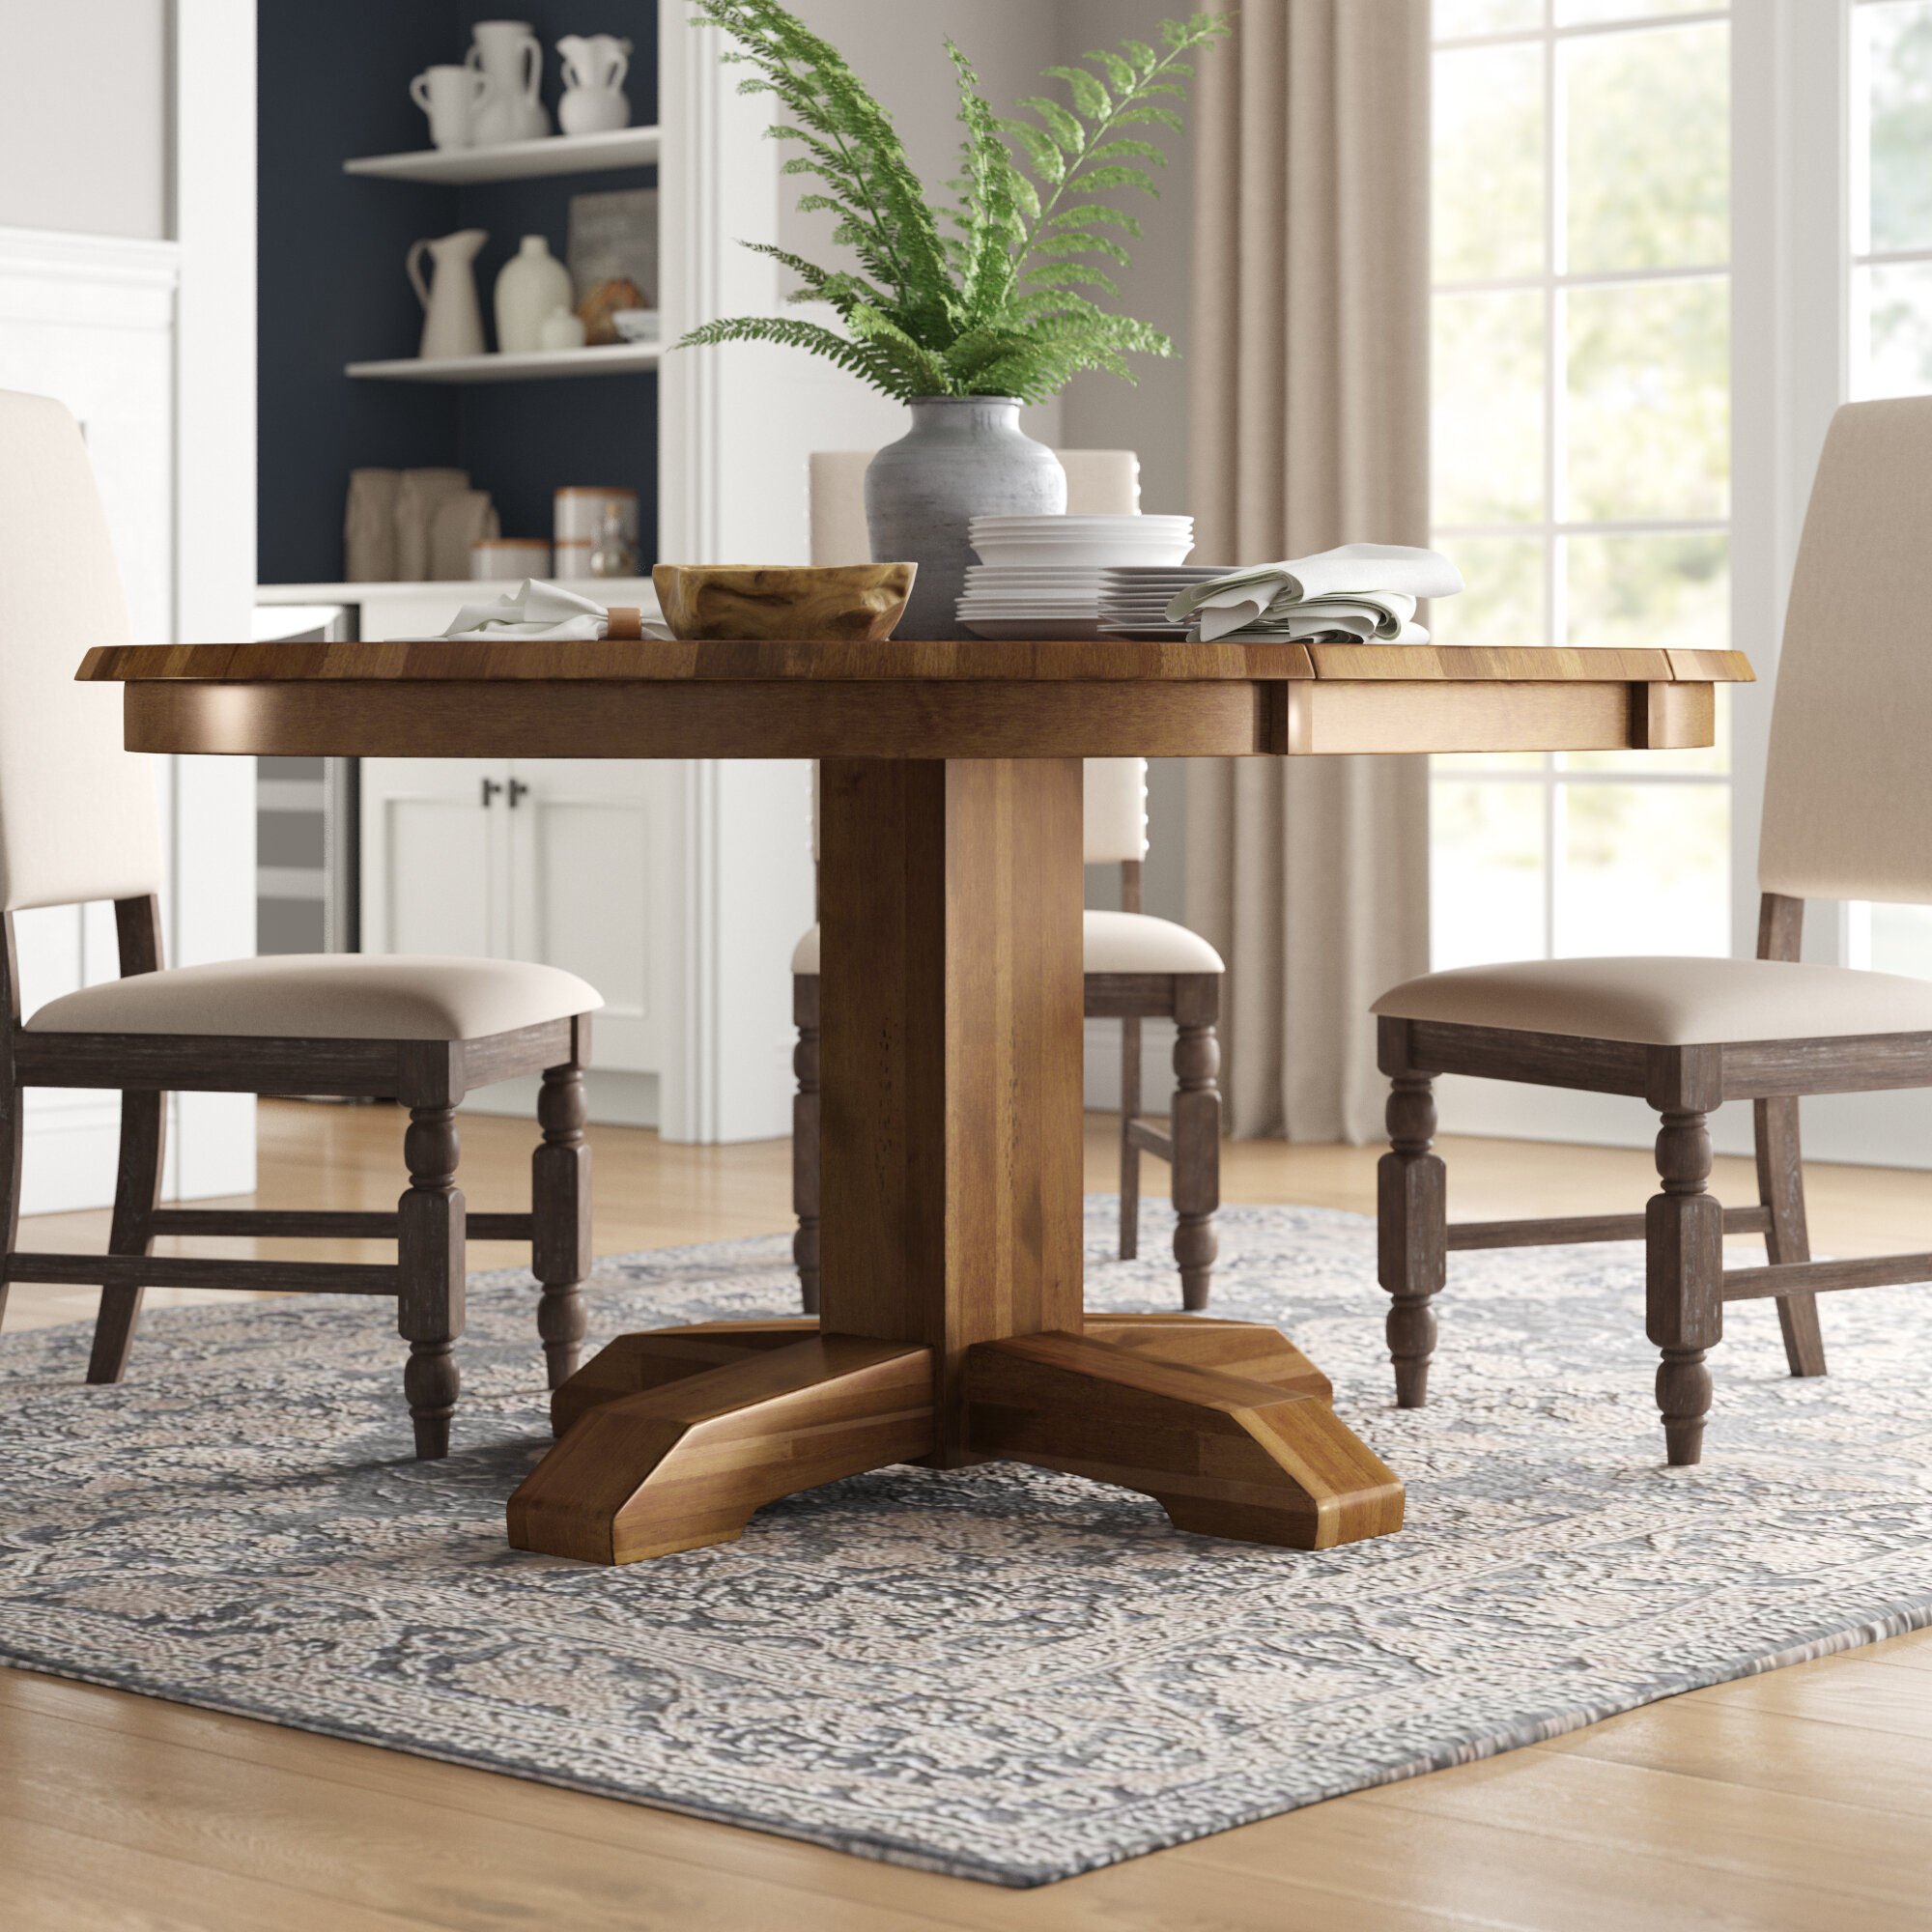 Wayfair French Country Kitchen Dining Tables You Ll Love In 2021